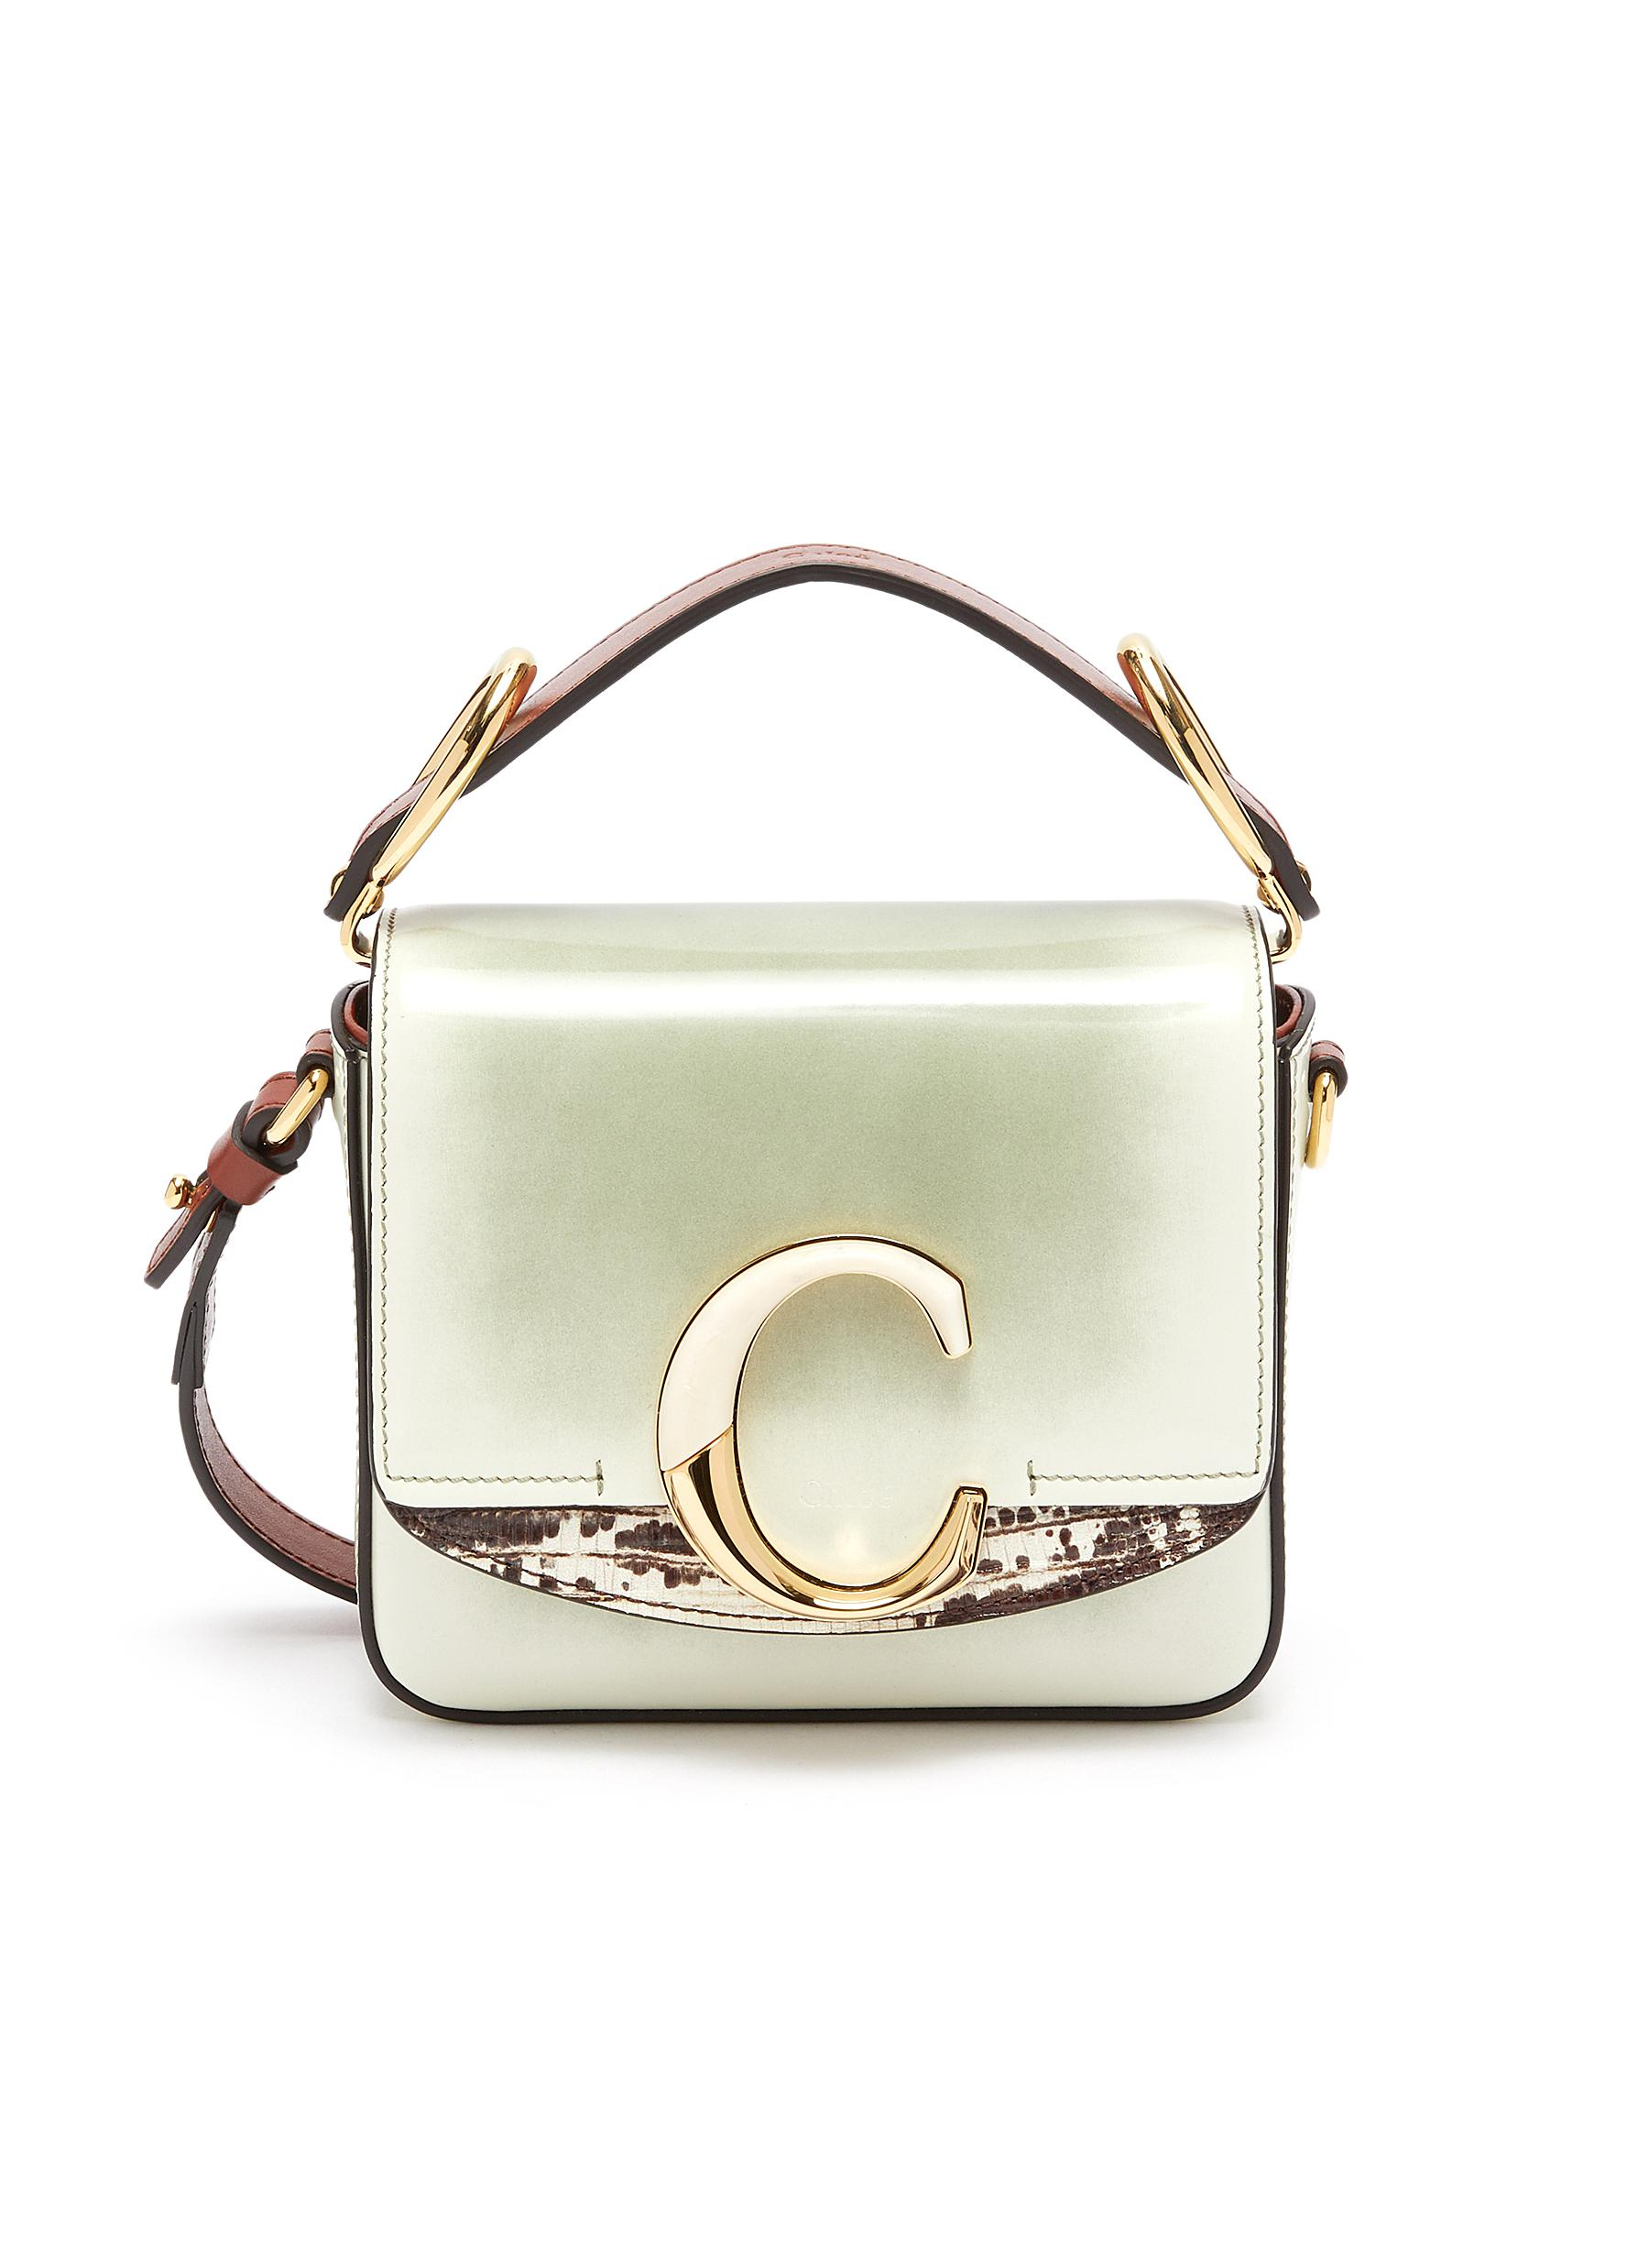 981a308c19 'Chloé C' Suede Panel Mini Leather Top Handle Bag in White